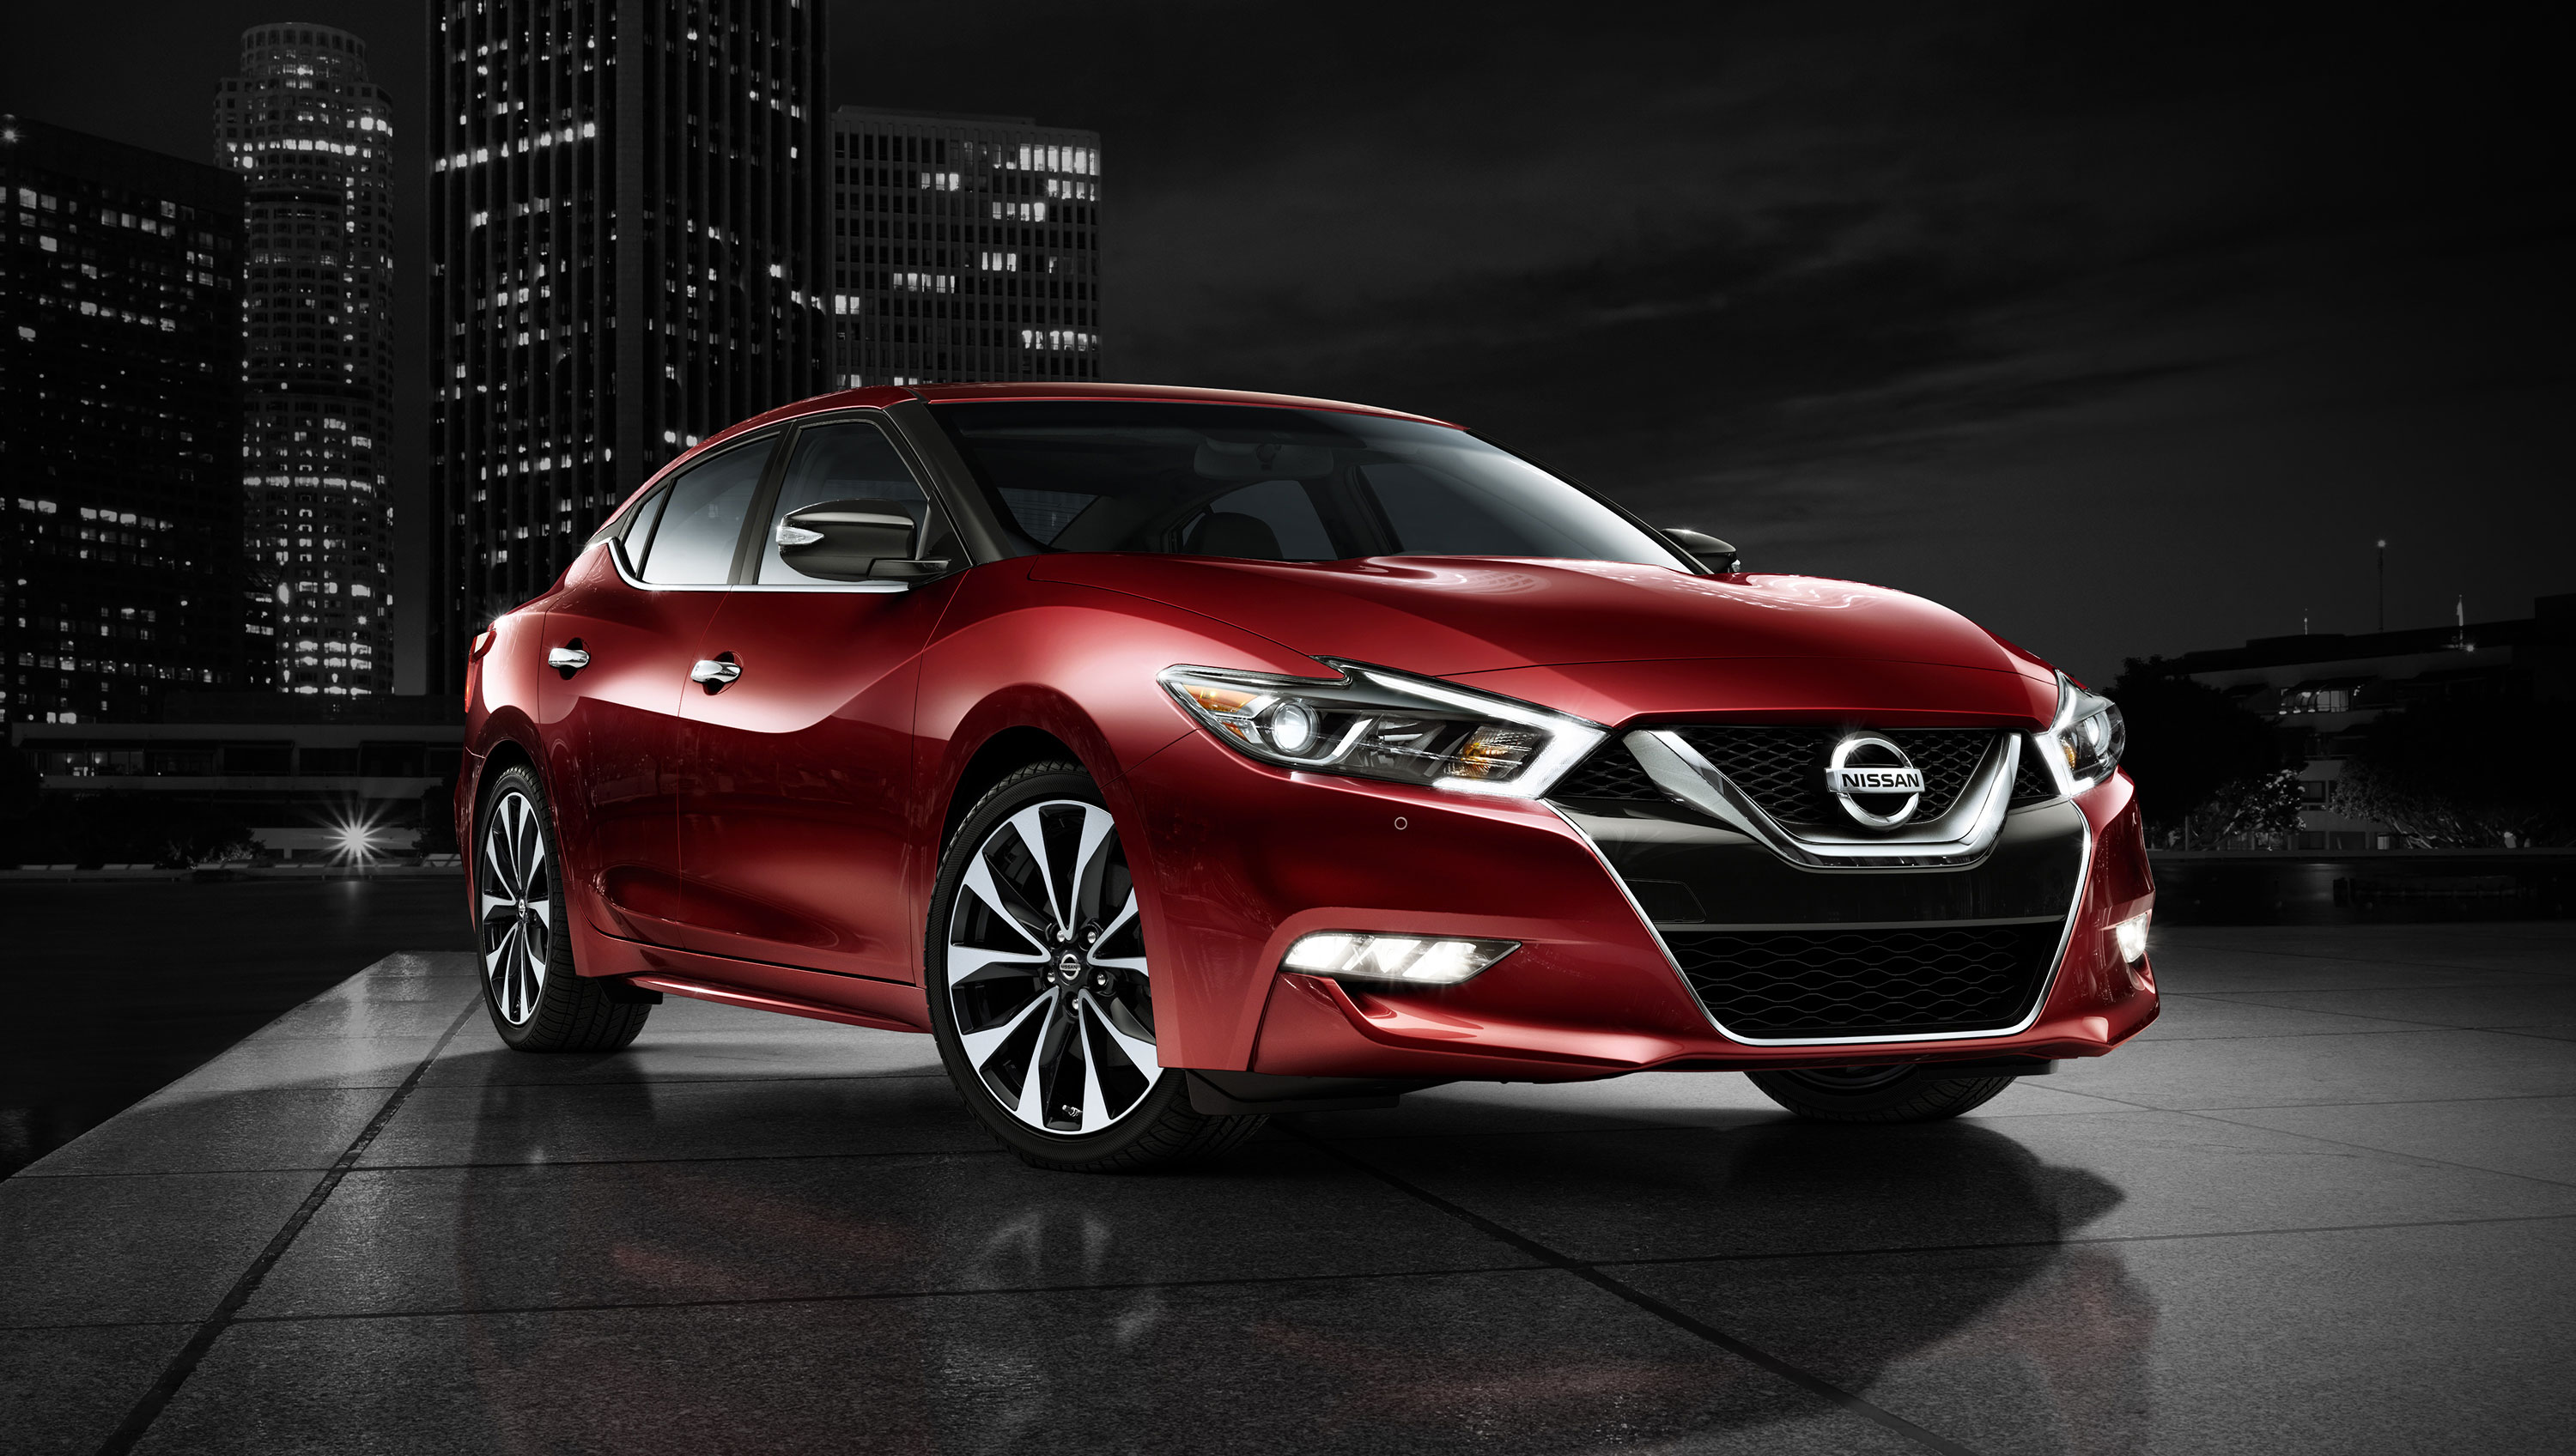 new nissan maxima price lease offer hillside nj route 22 nissan. Black Bedroom Furniture Sets. Home Design Ideas